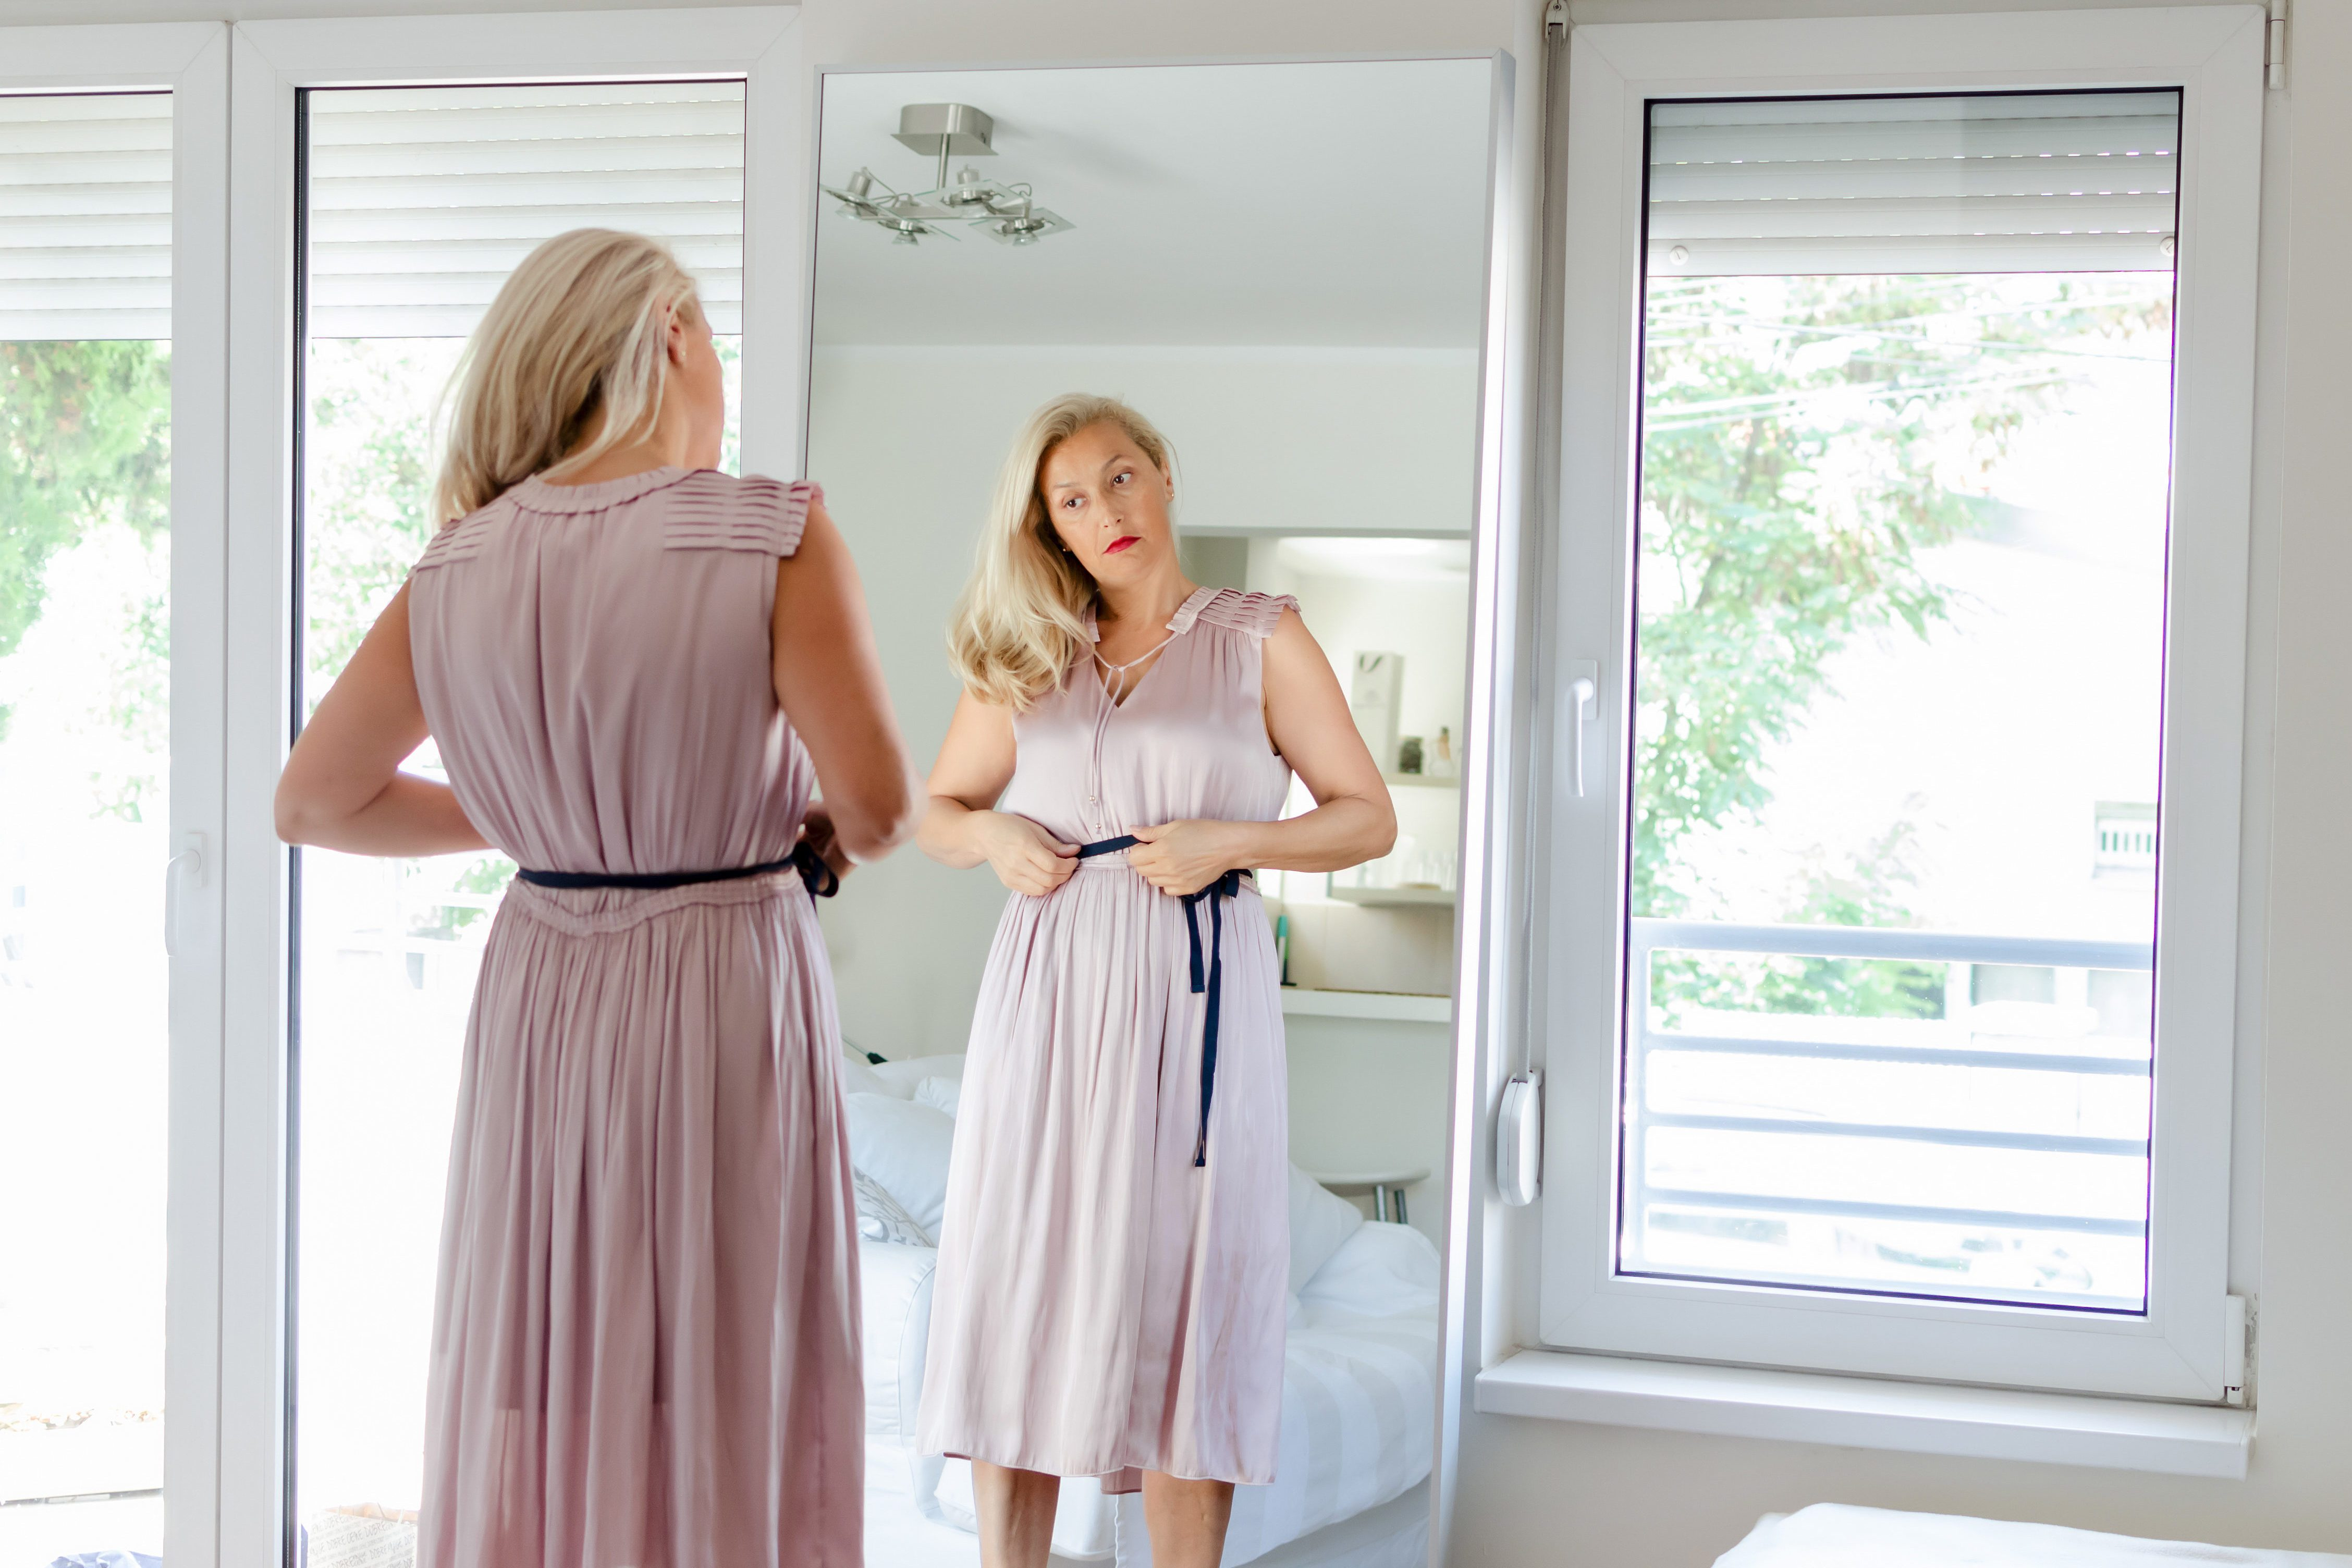 Senior woman in front of mirror getting ready, wearing a pink dress.